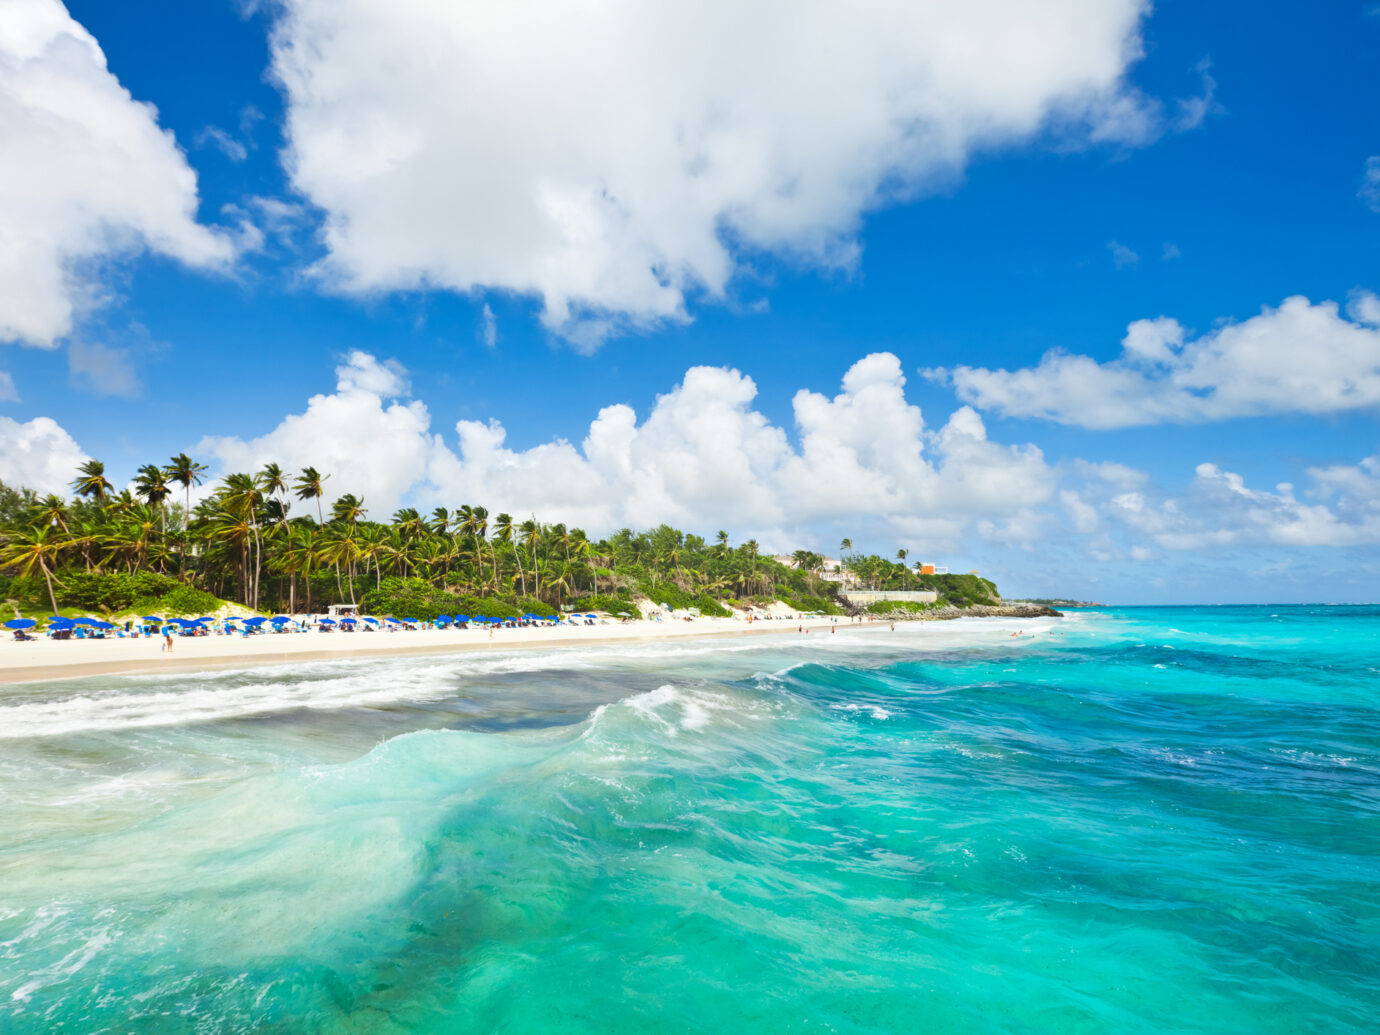 The famous and spectacular Crane Beach at the south coast of Barbados.